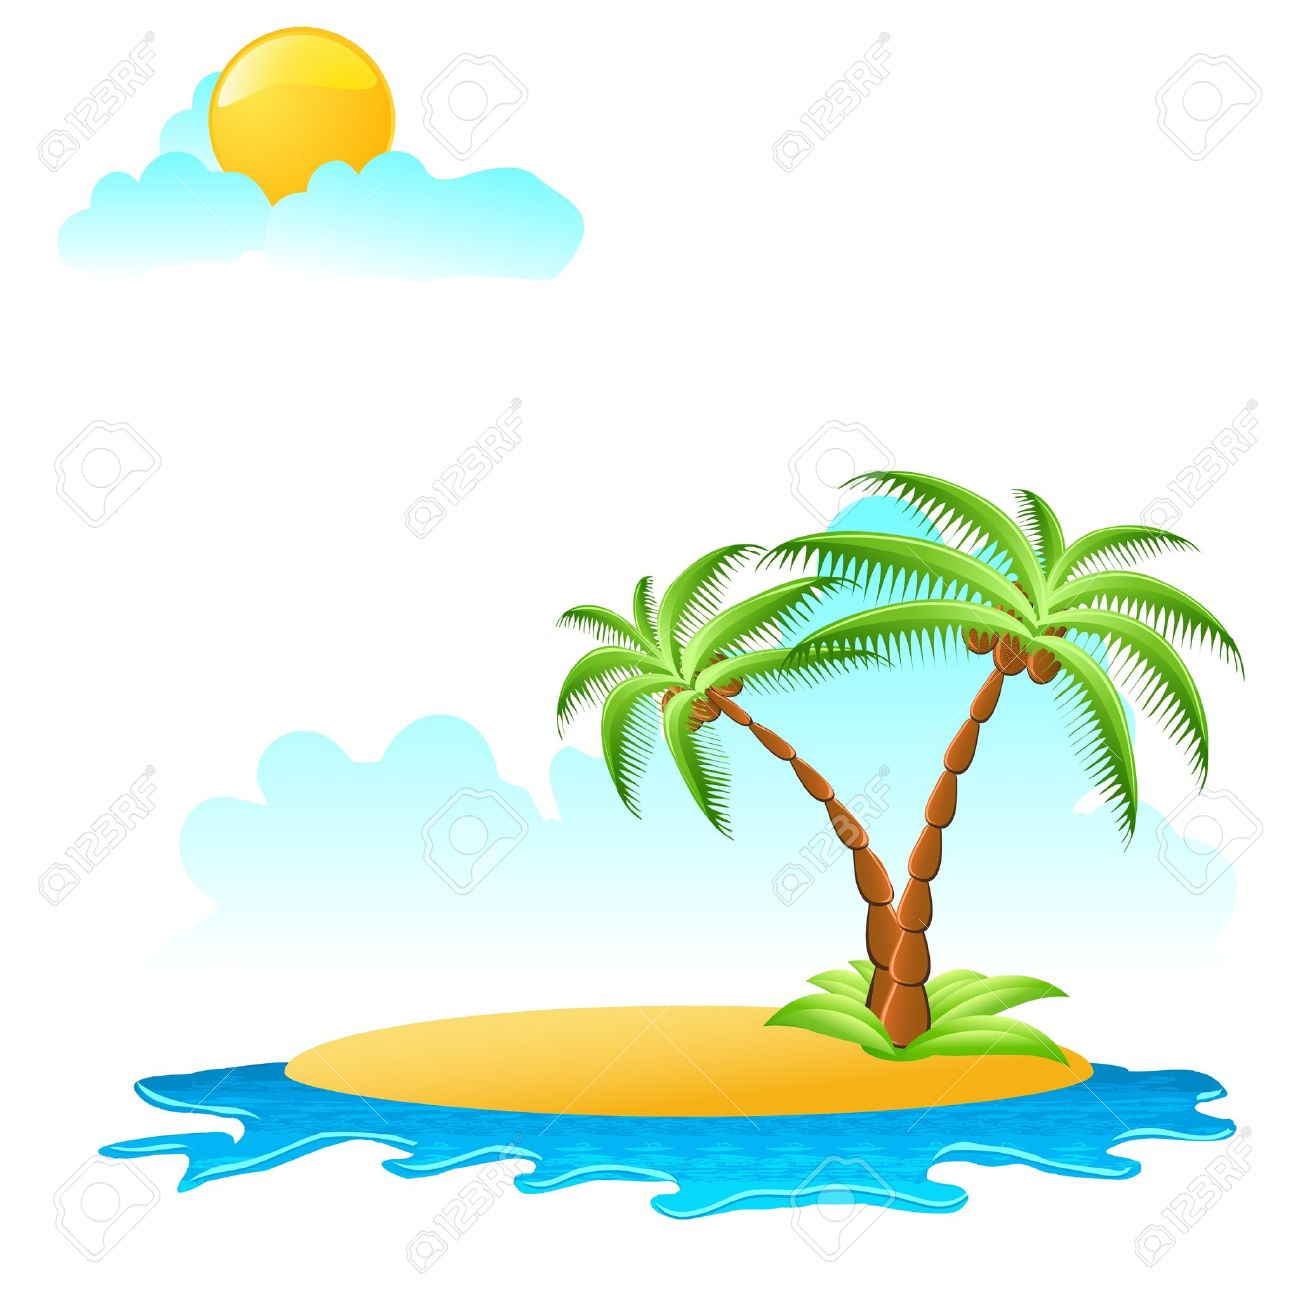 Coconut Tree Island Clipart.